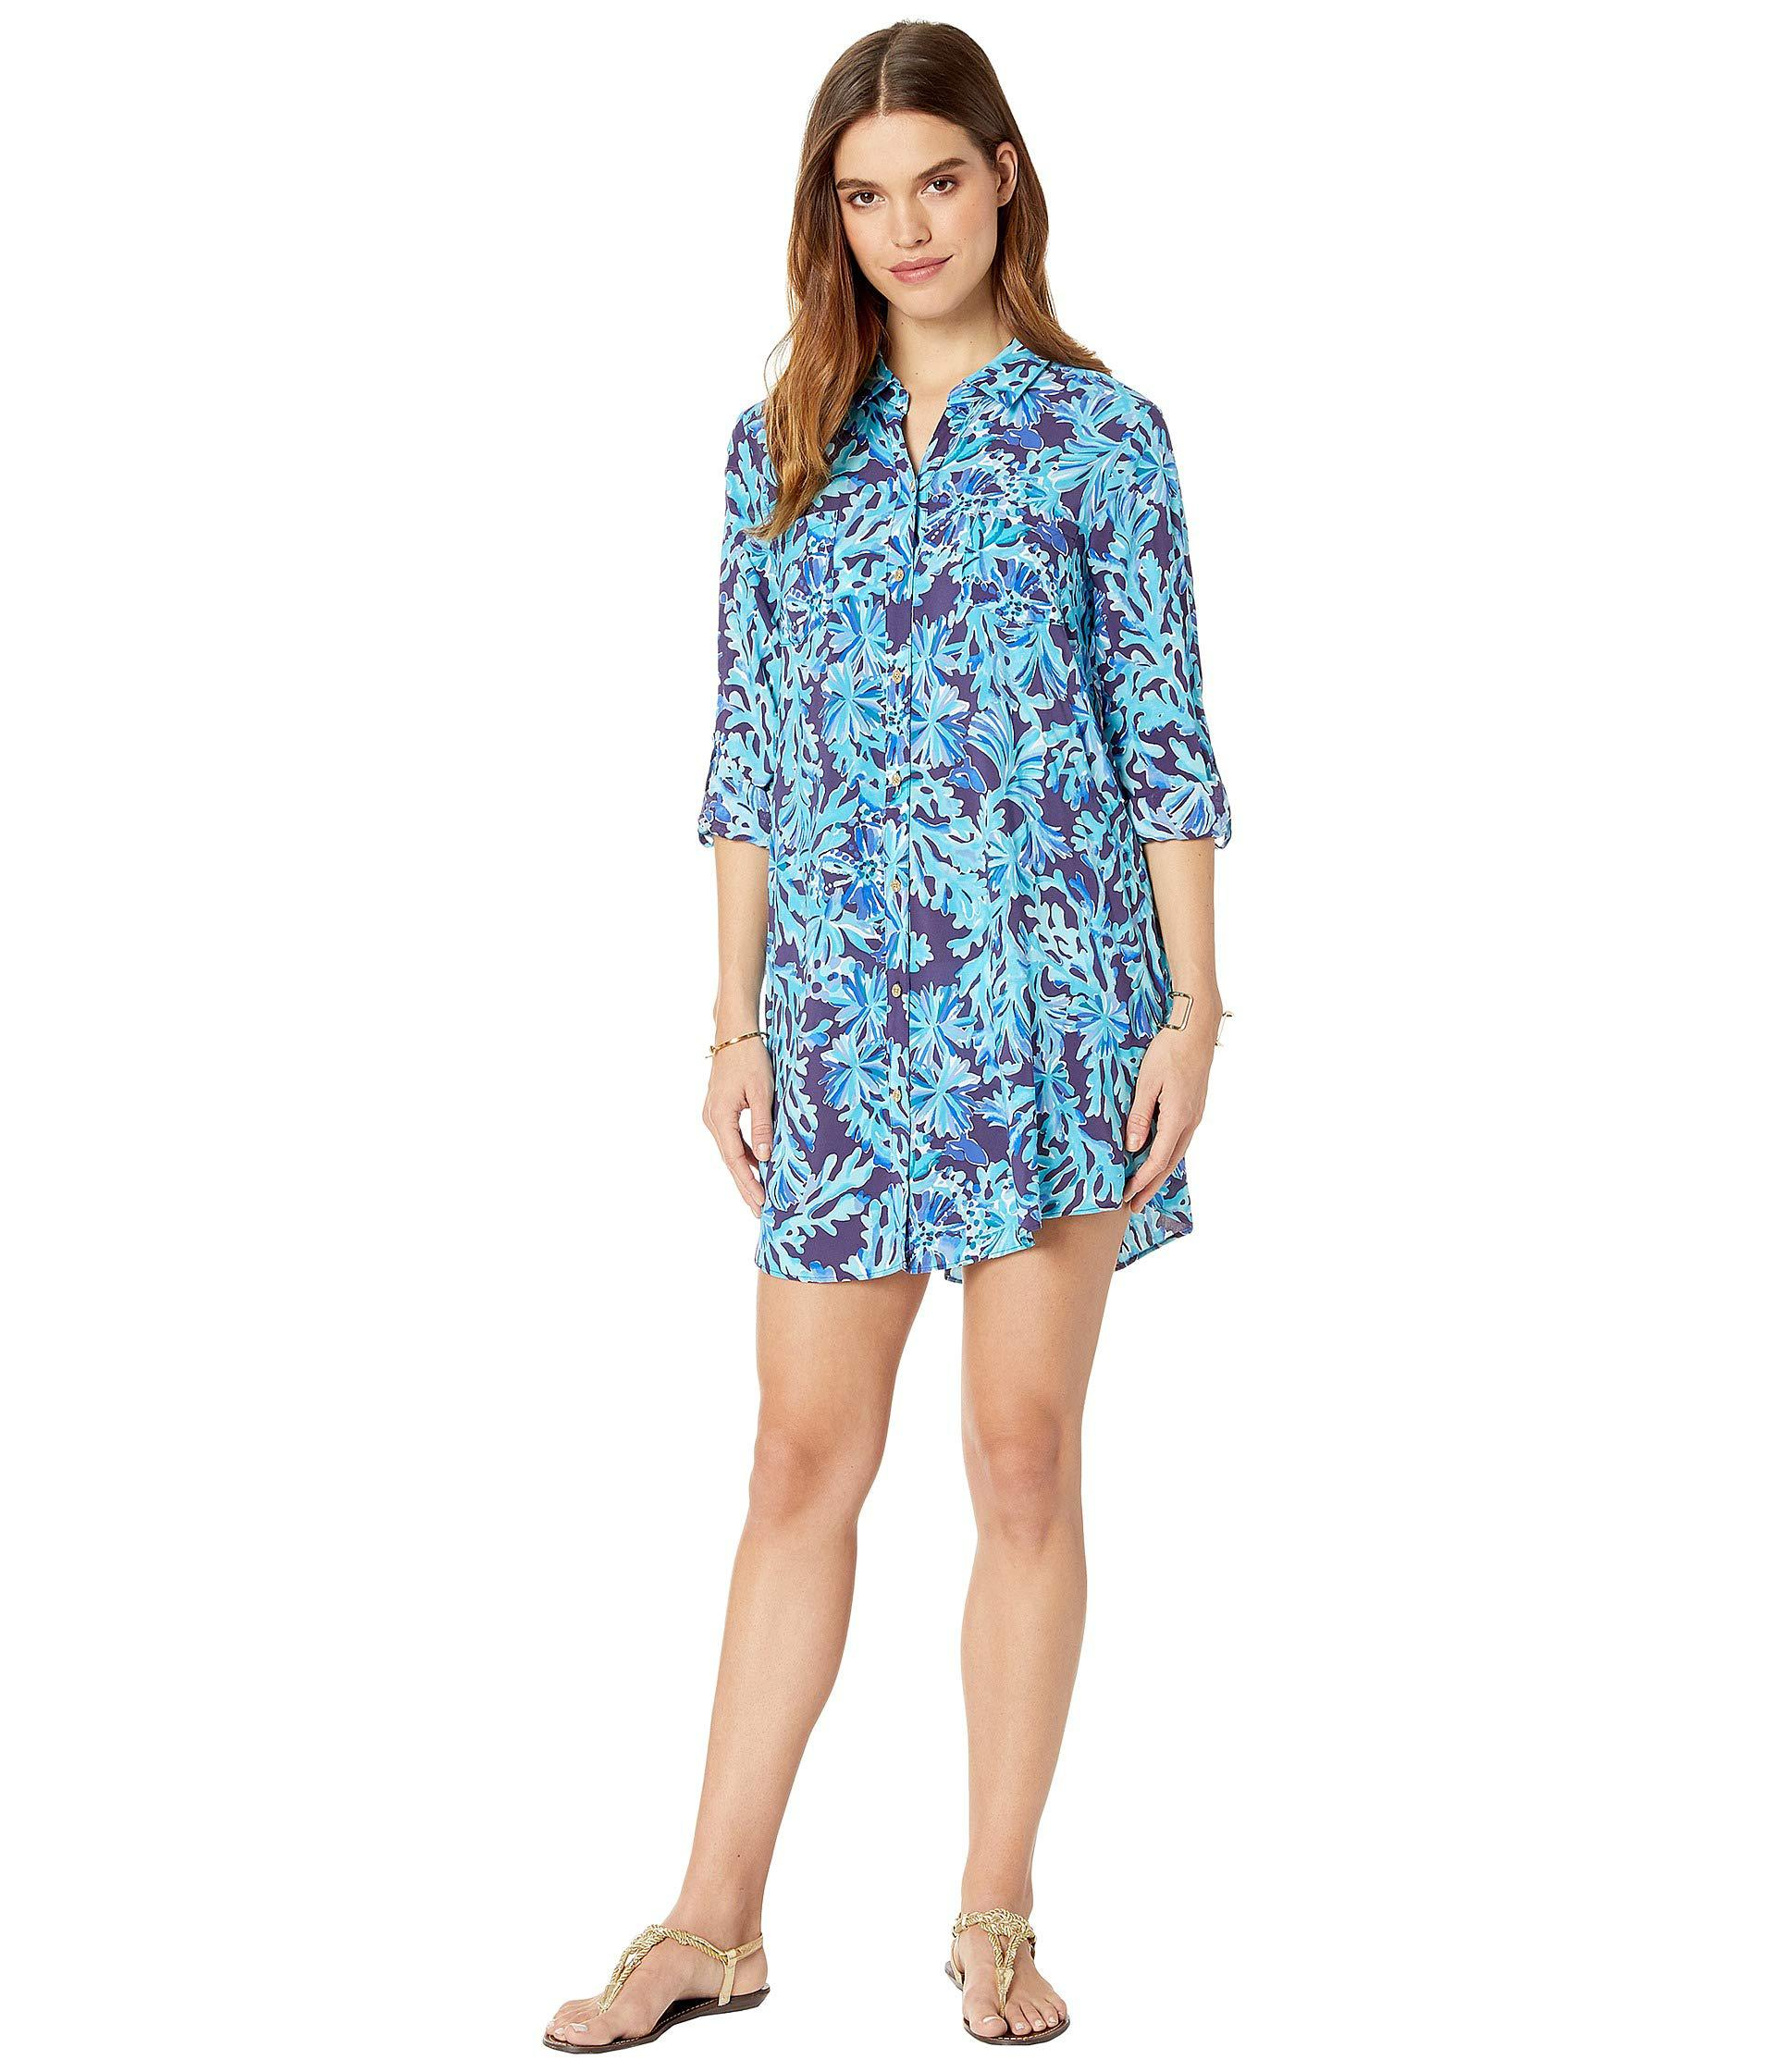 e739726843185 Lyst - Lilly Pulitzer Natalie Cover-up (multi Postcards From ...